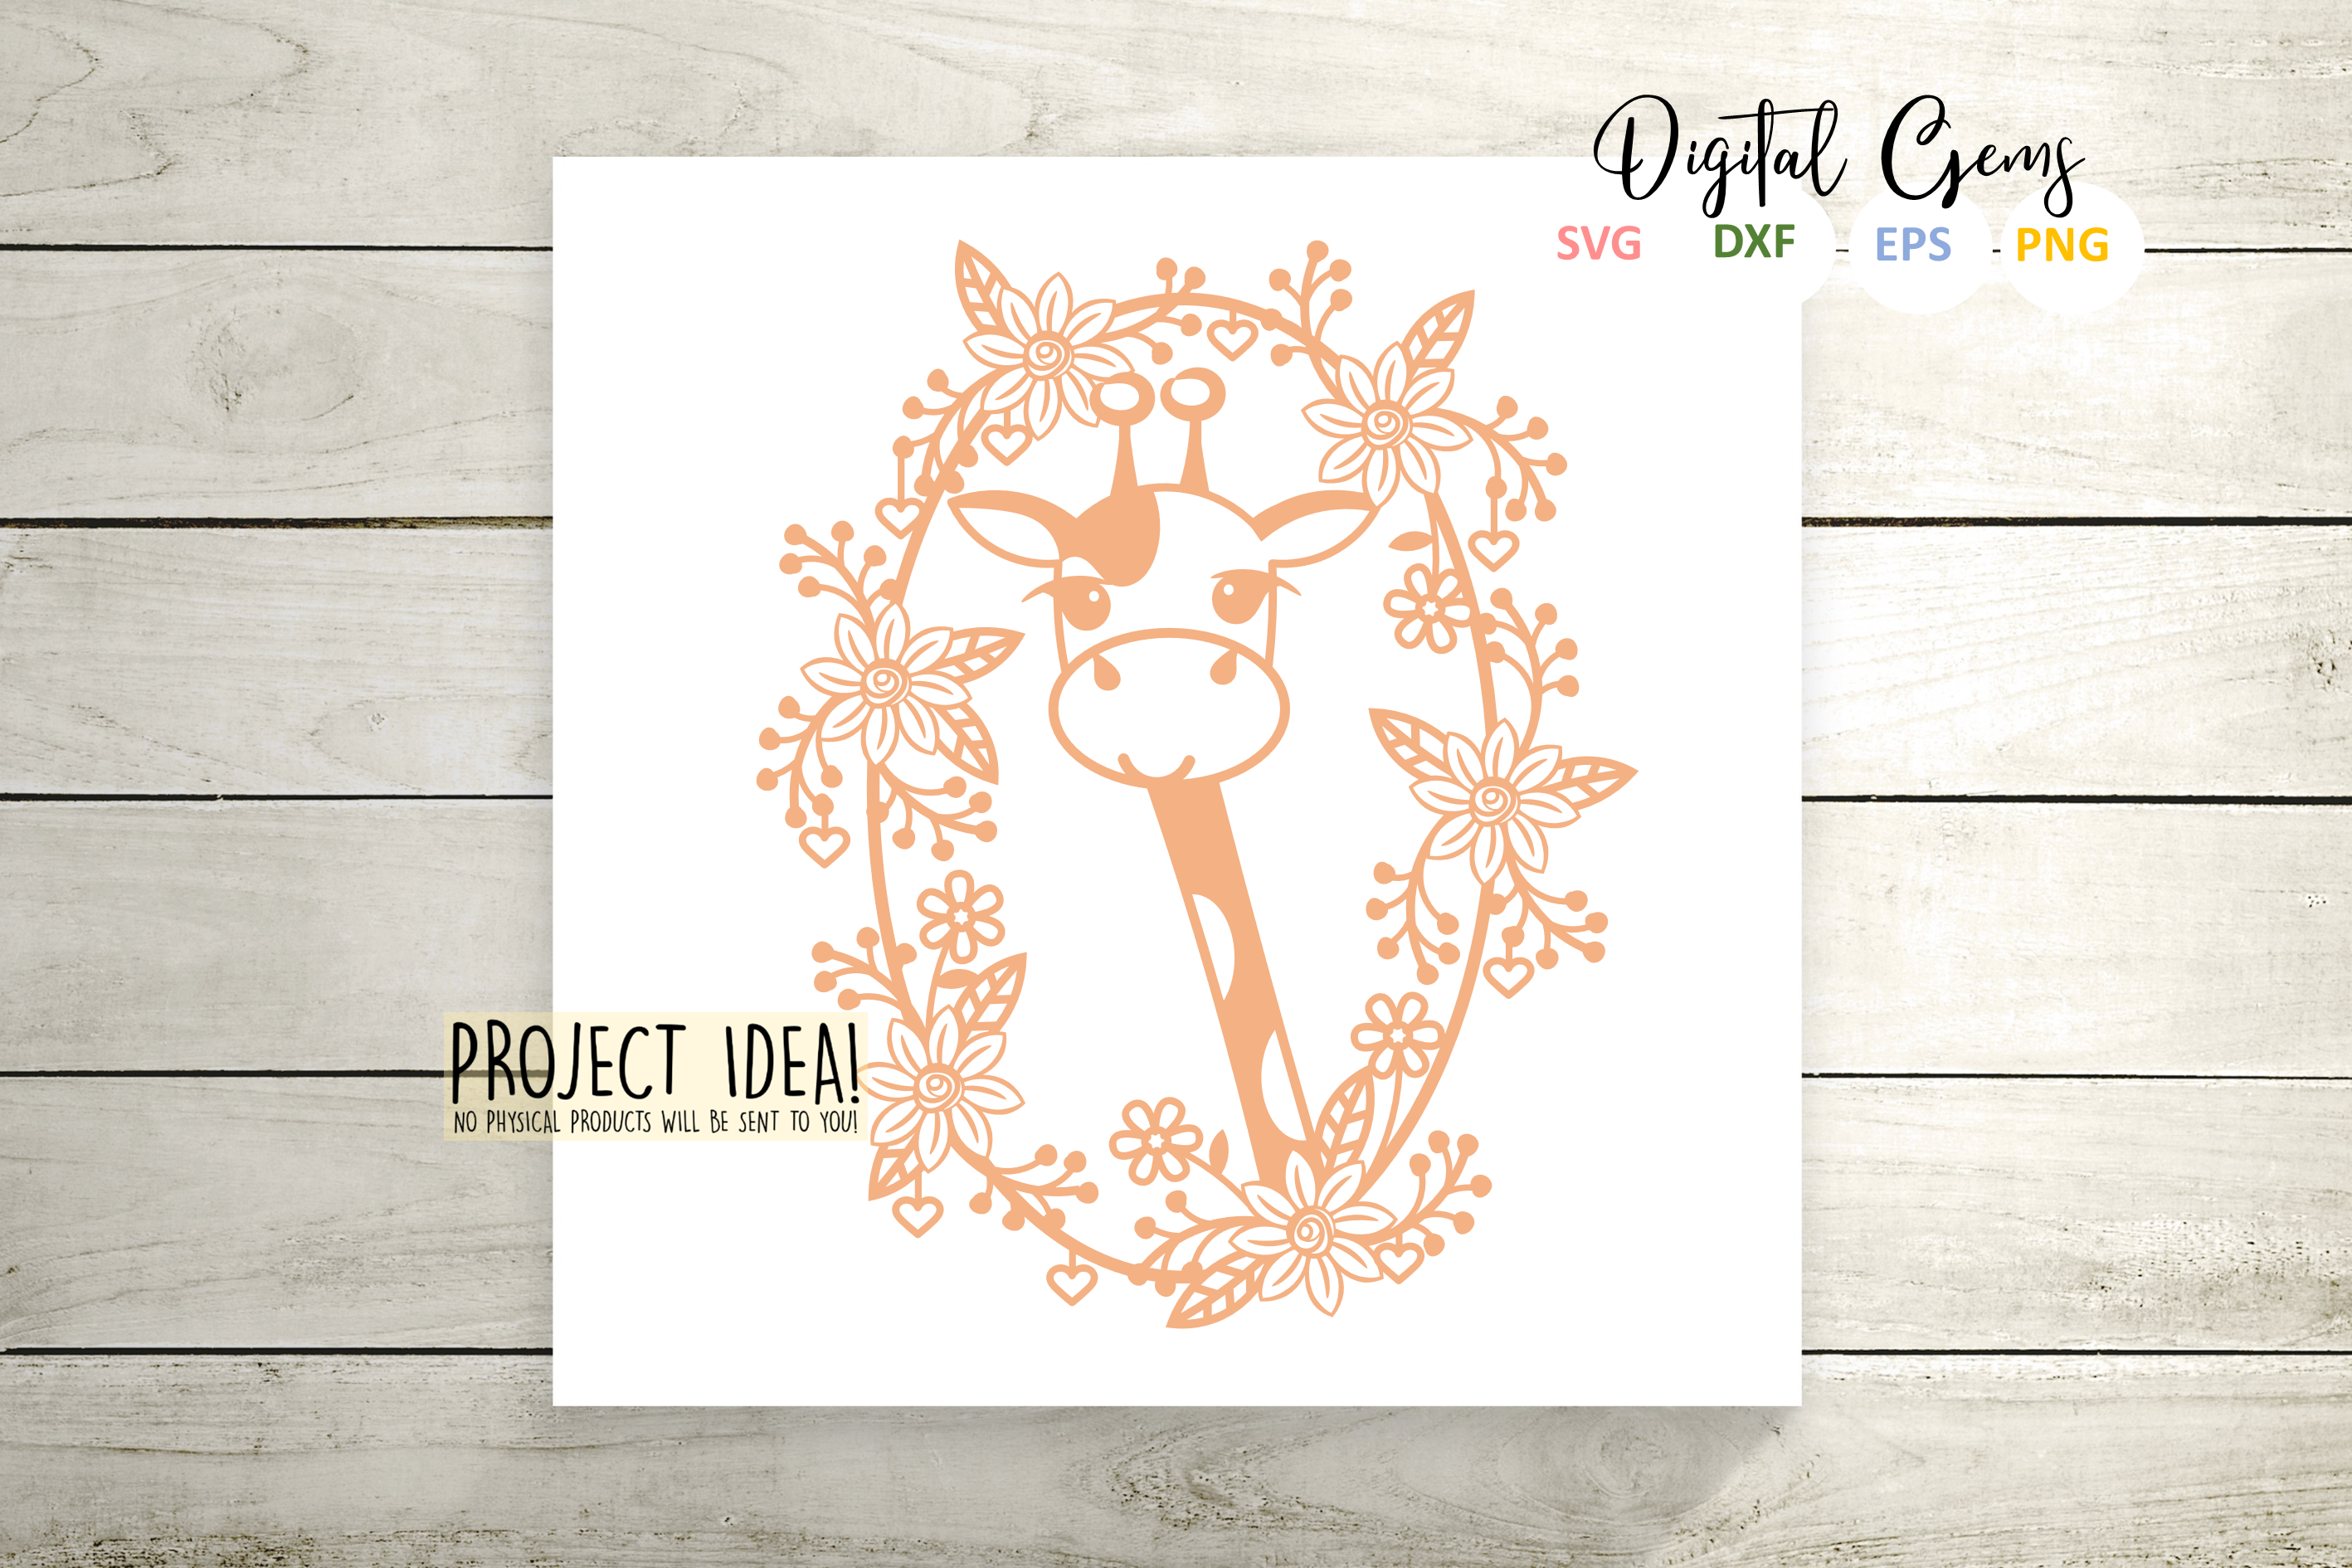 Giraffe paper cut designs SVG / DXF / EPS / PNG files example image 5